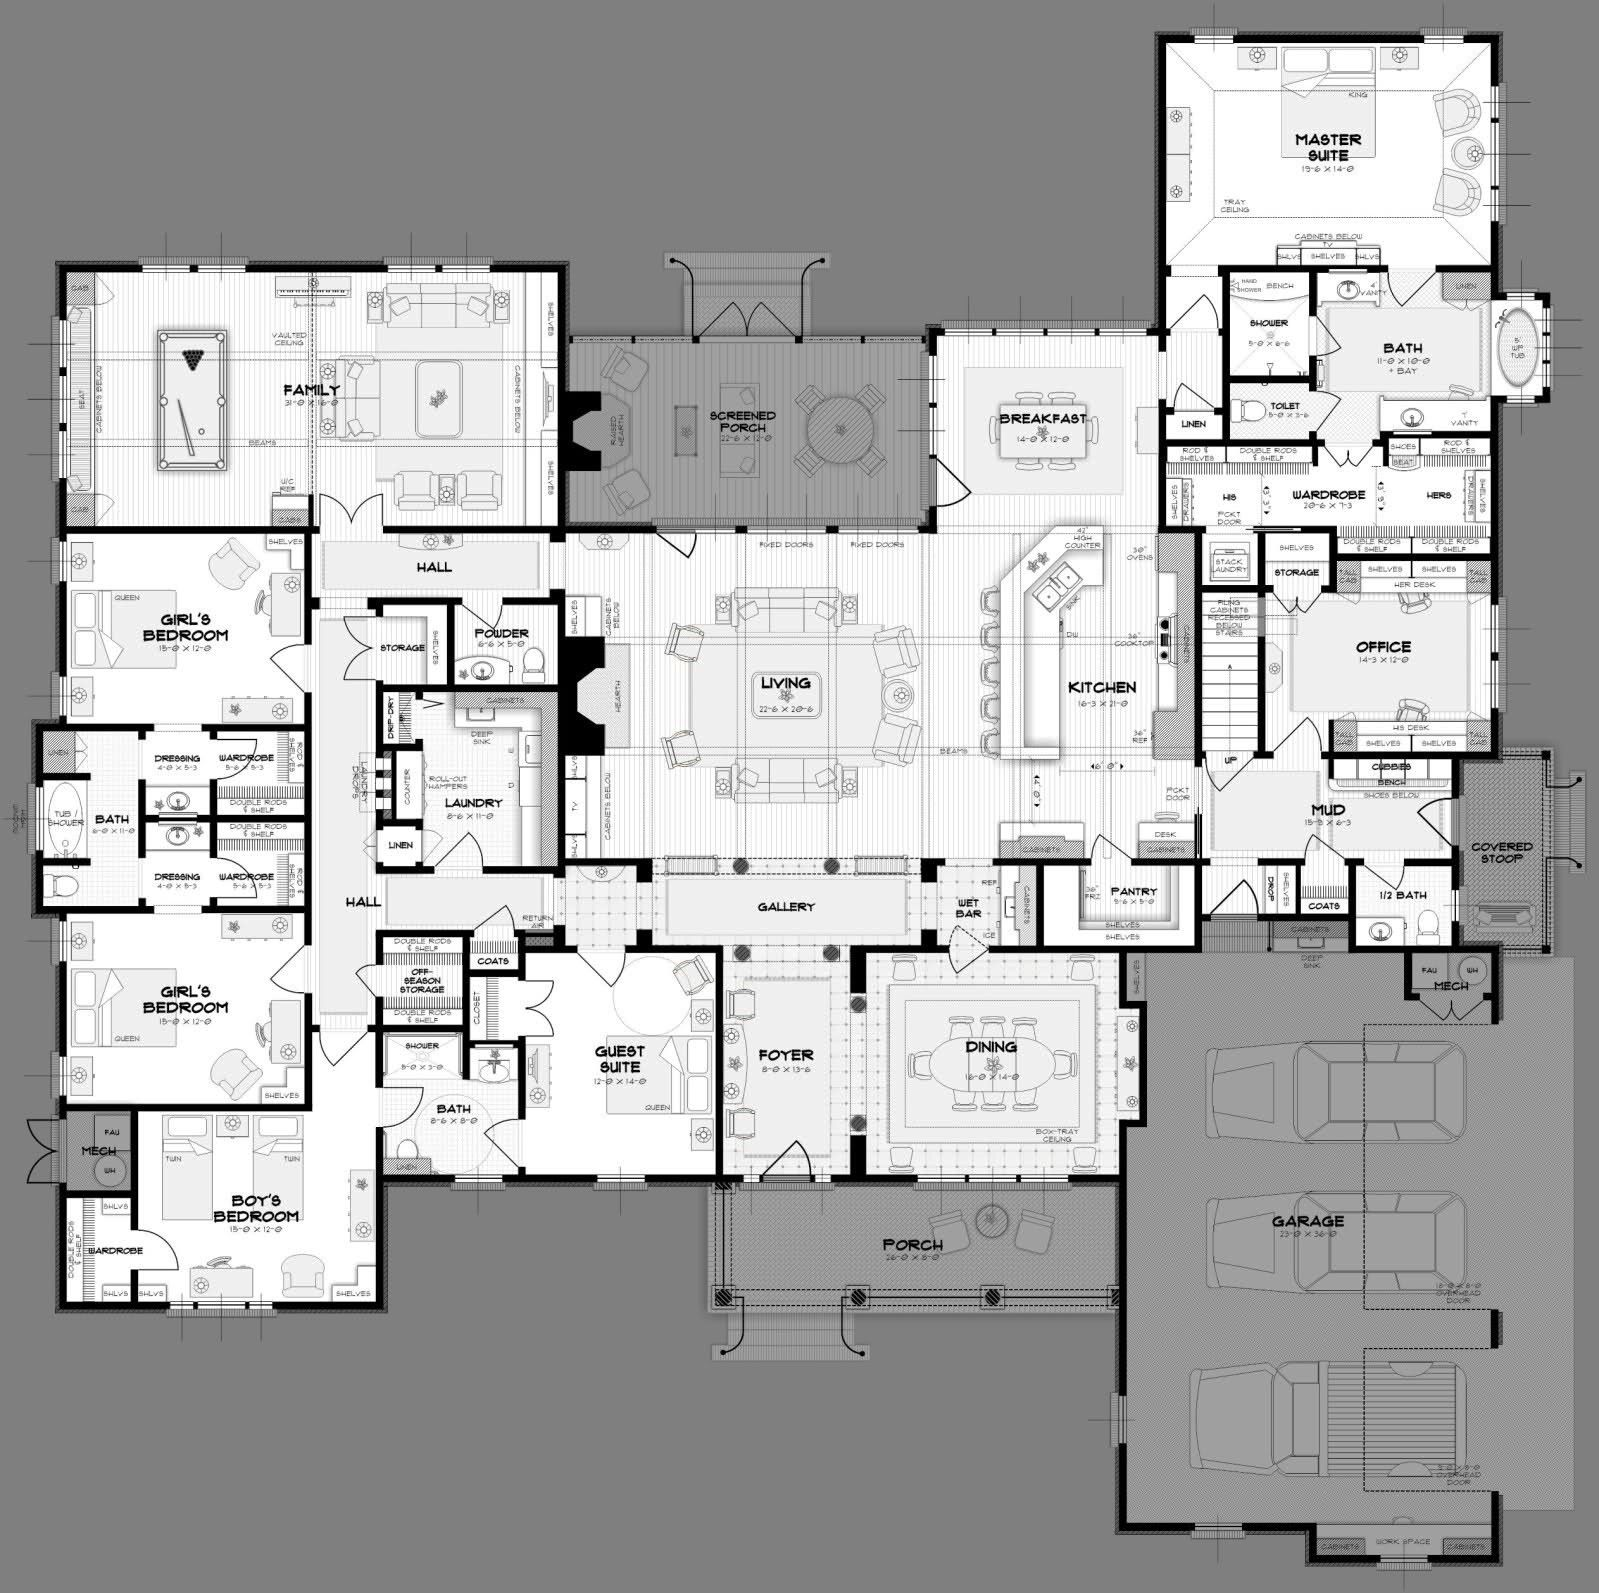 Sprawling 1Level Home 5 bedroom house plans, House